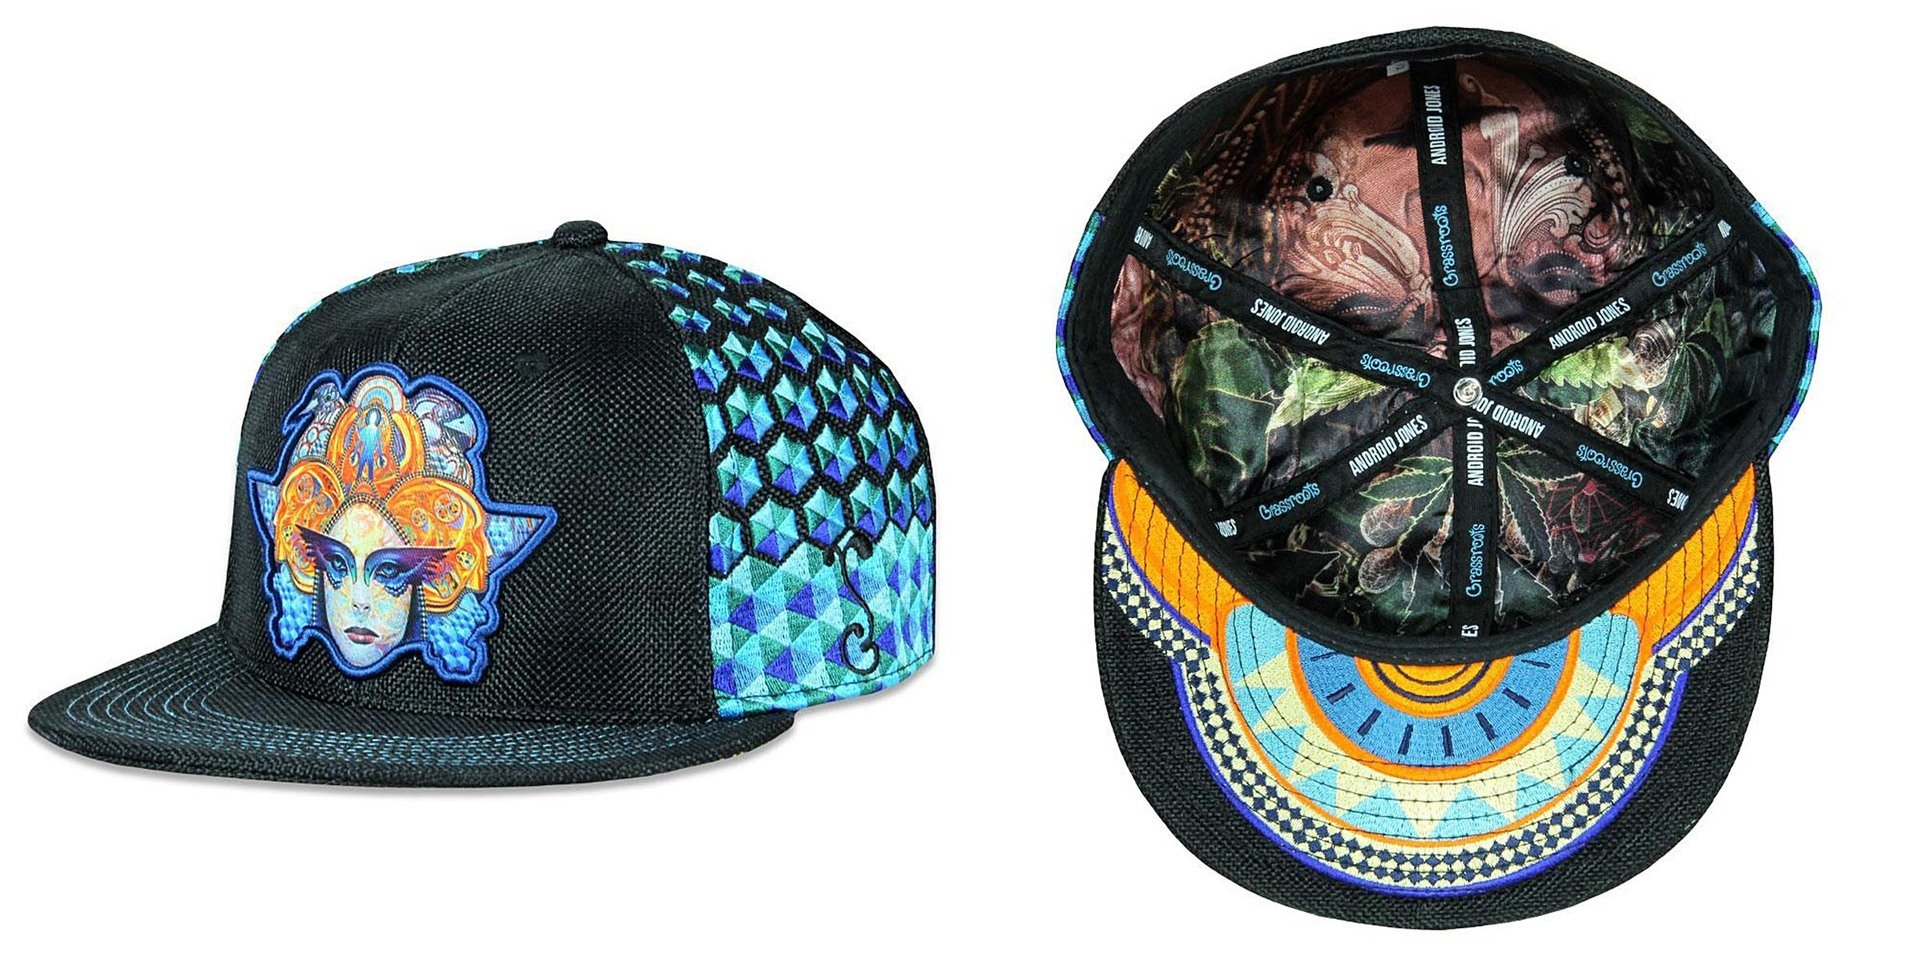 7a2078a0 Android Jones 11/11/11 Black Fitted Grassroots California Hat